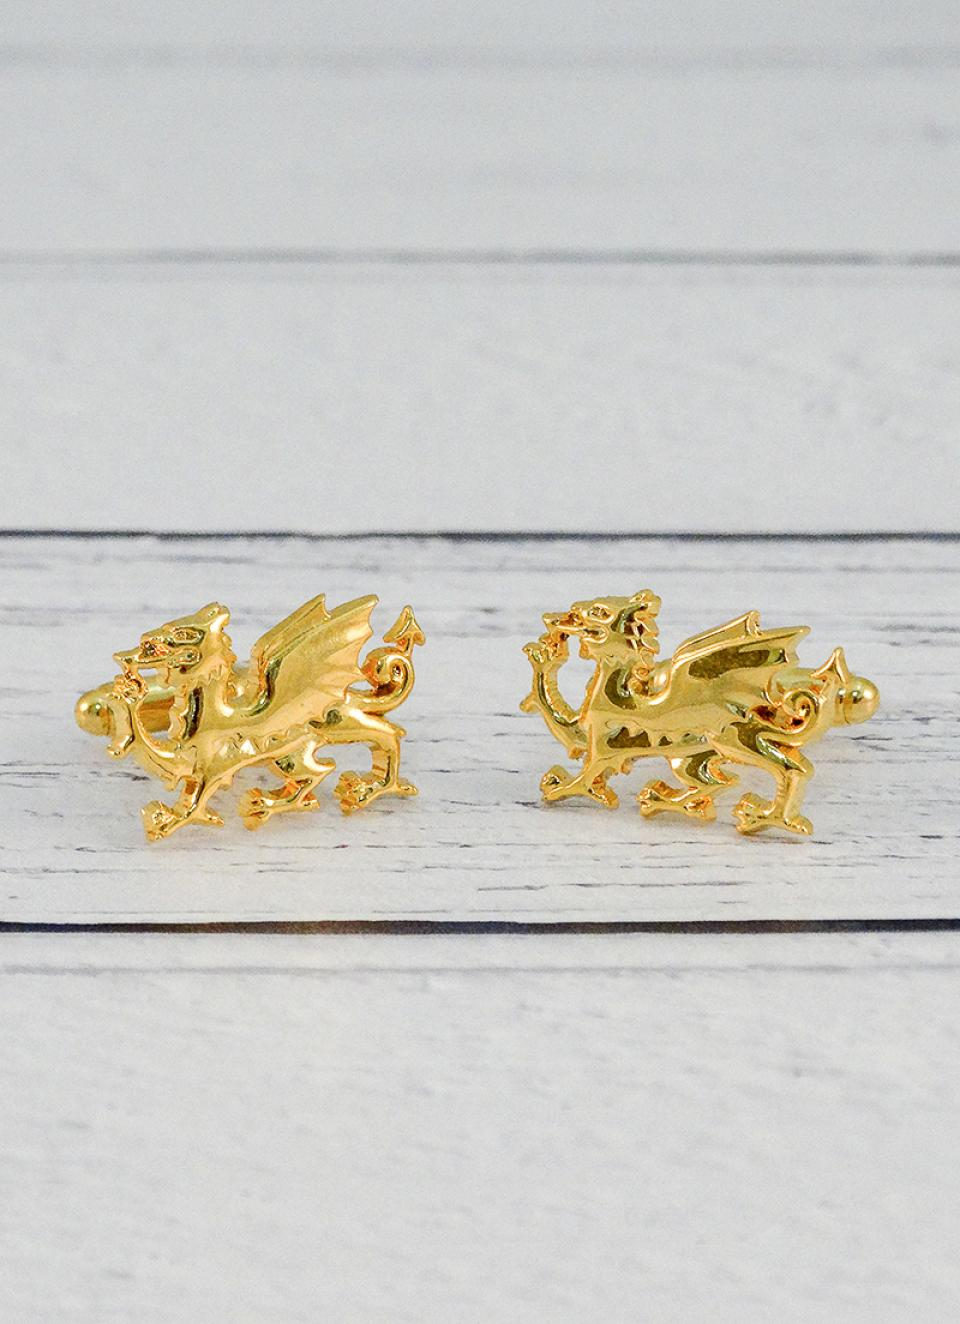 Gold Dragon Plated Cufflinks